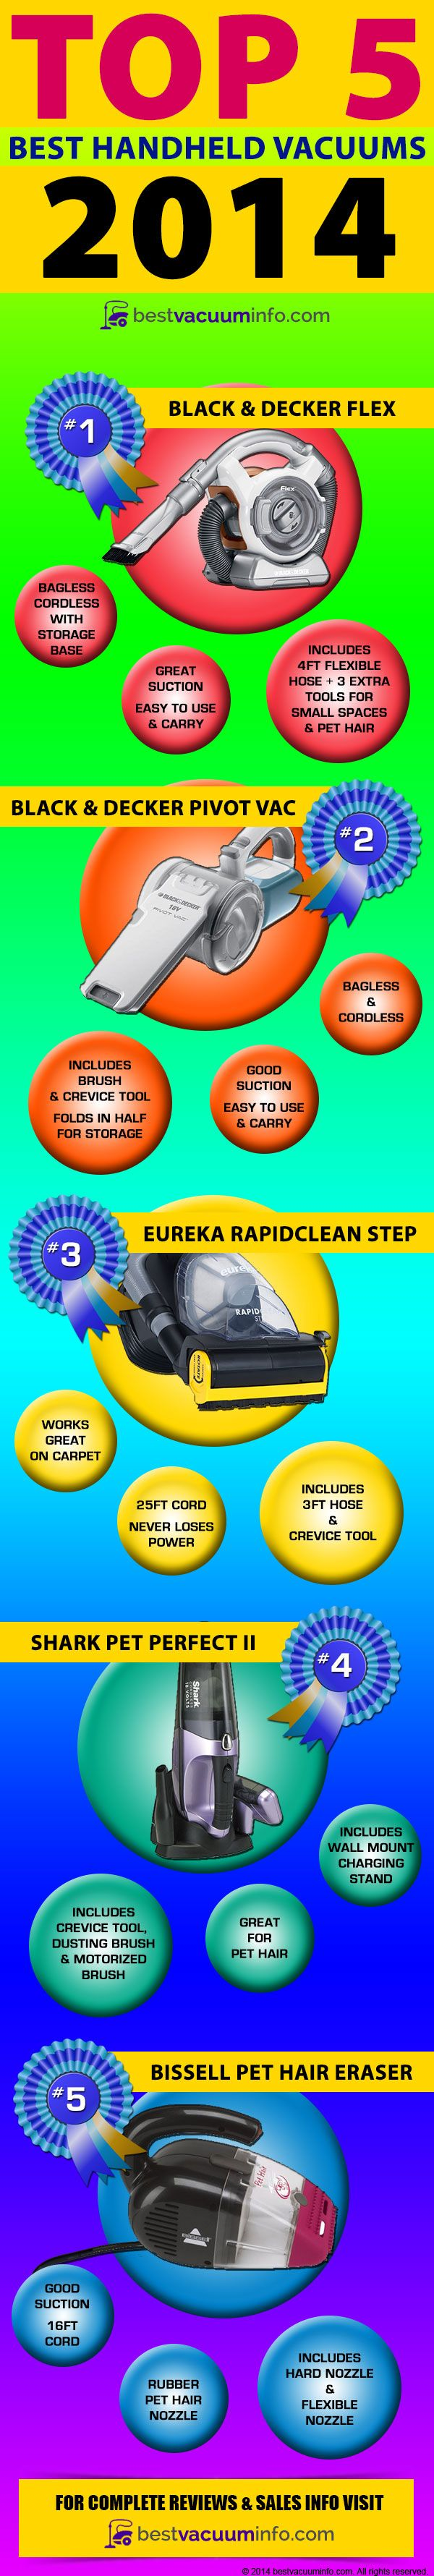 It is so helpful to have a little handheld vacuum around the house for small messes and spills – even to clean up pet hair on furniture. Bestvacuuminfo.com has compiled this list of their top 5 picks for 2014 to help you choose which one is right for your family. #infographics